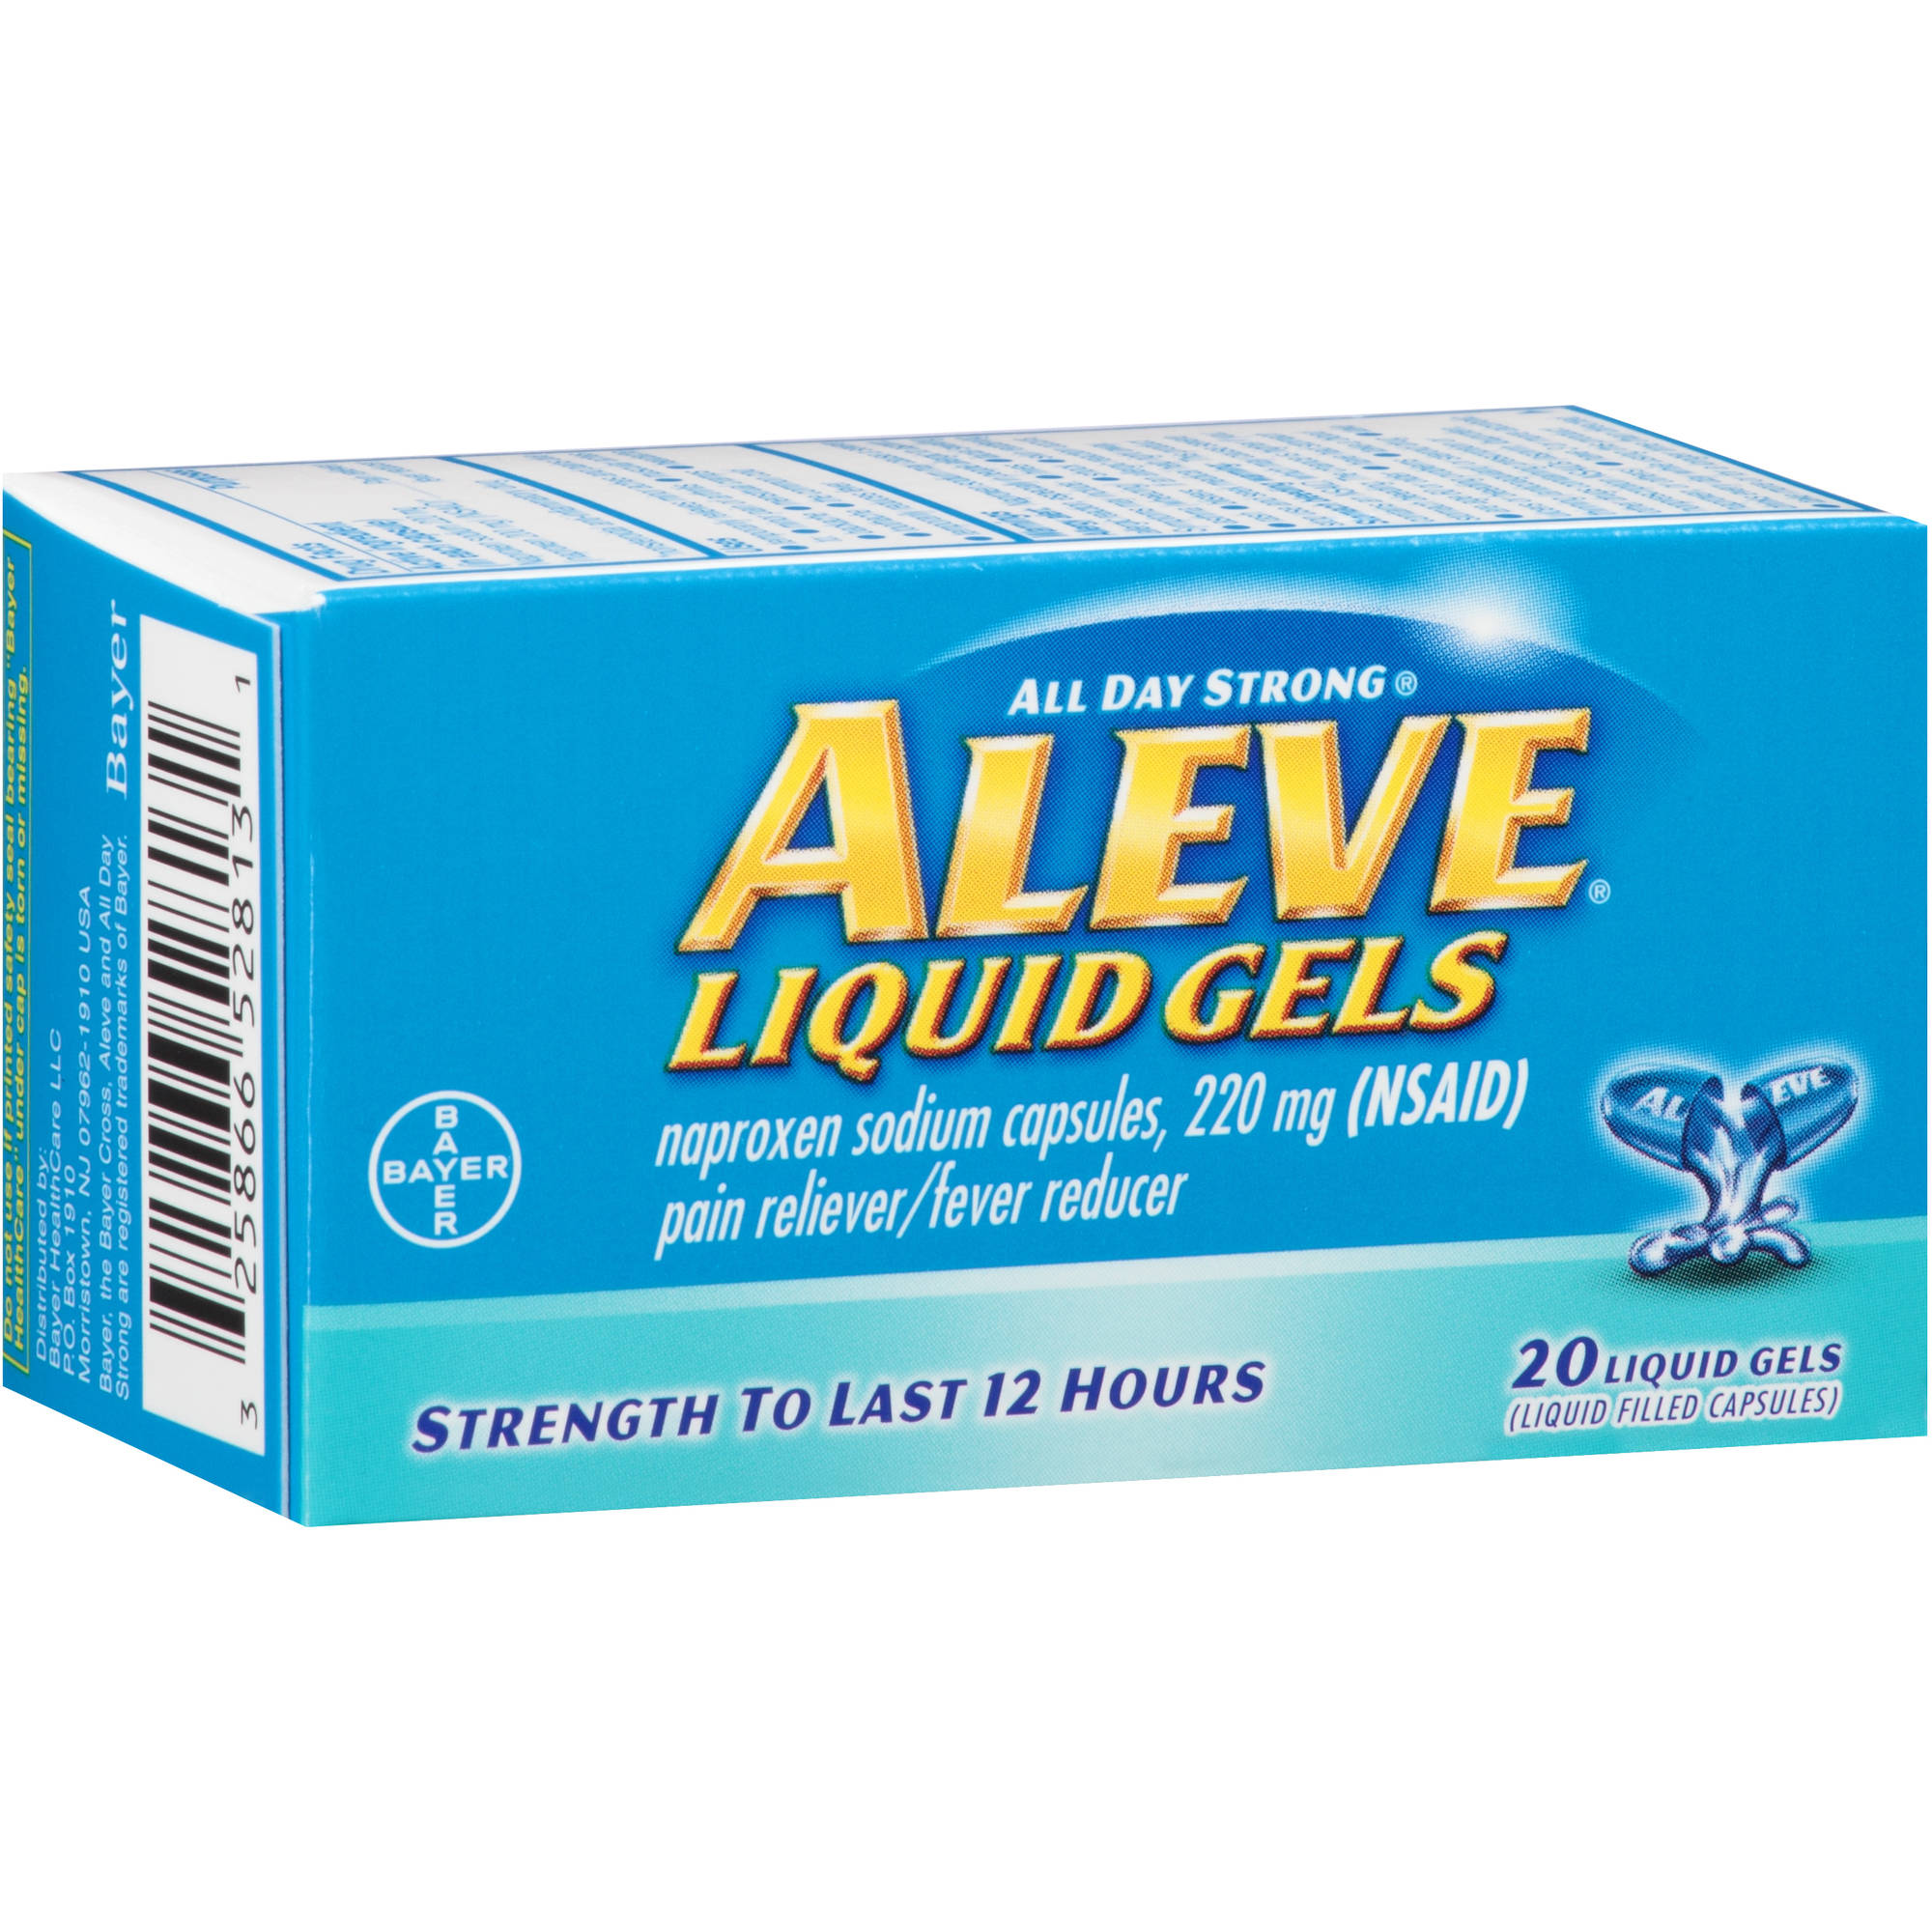 Aleve Pain Reliever/Fever Reducer Naproxen Sodium Liquid Gels, 220mg, 20 count